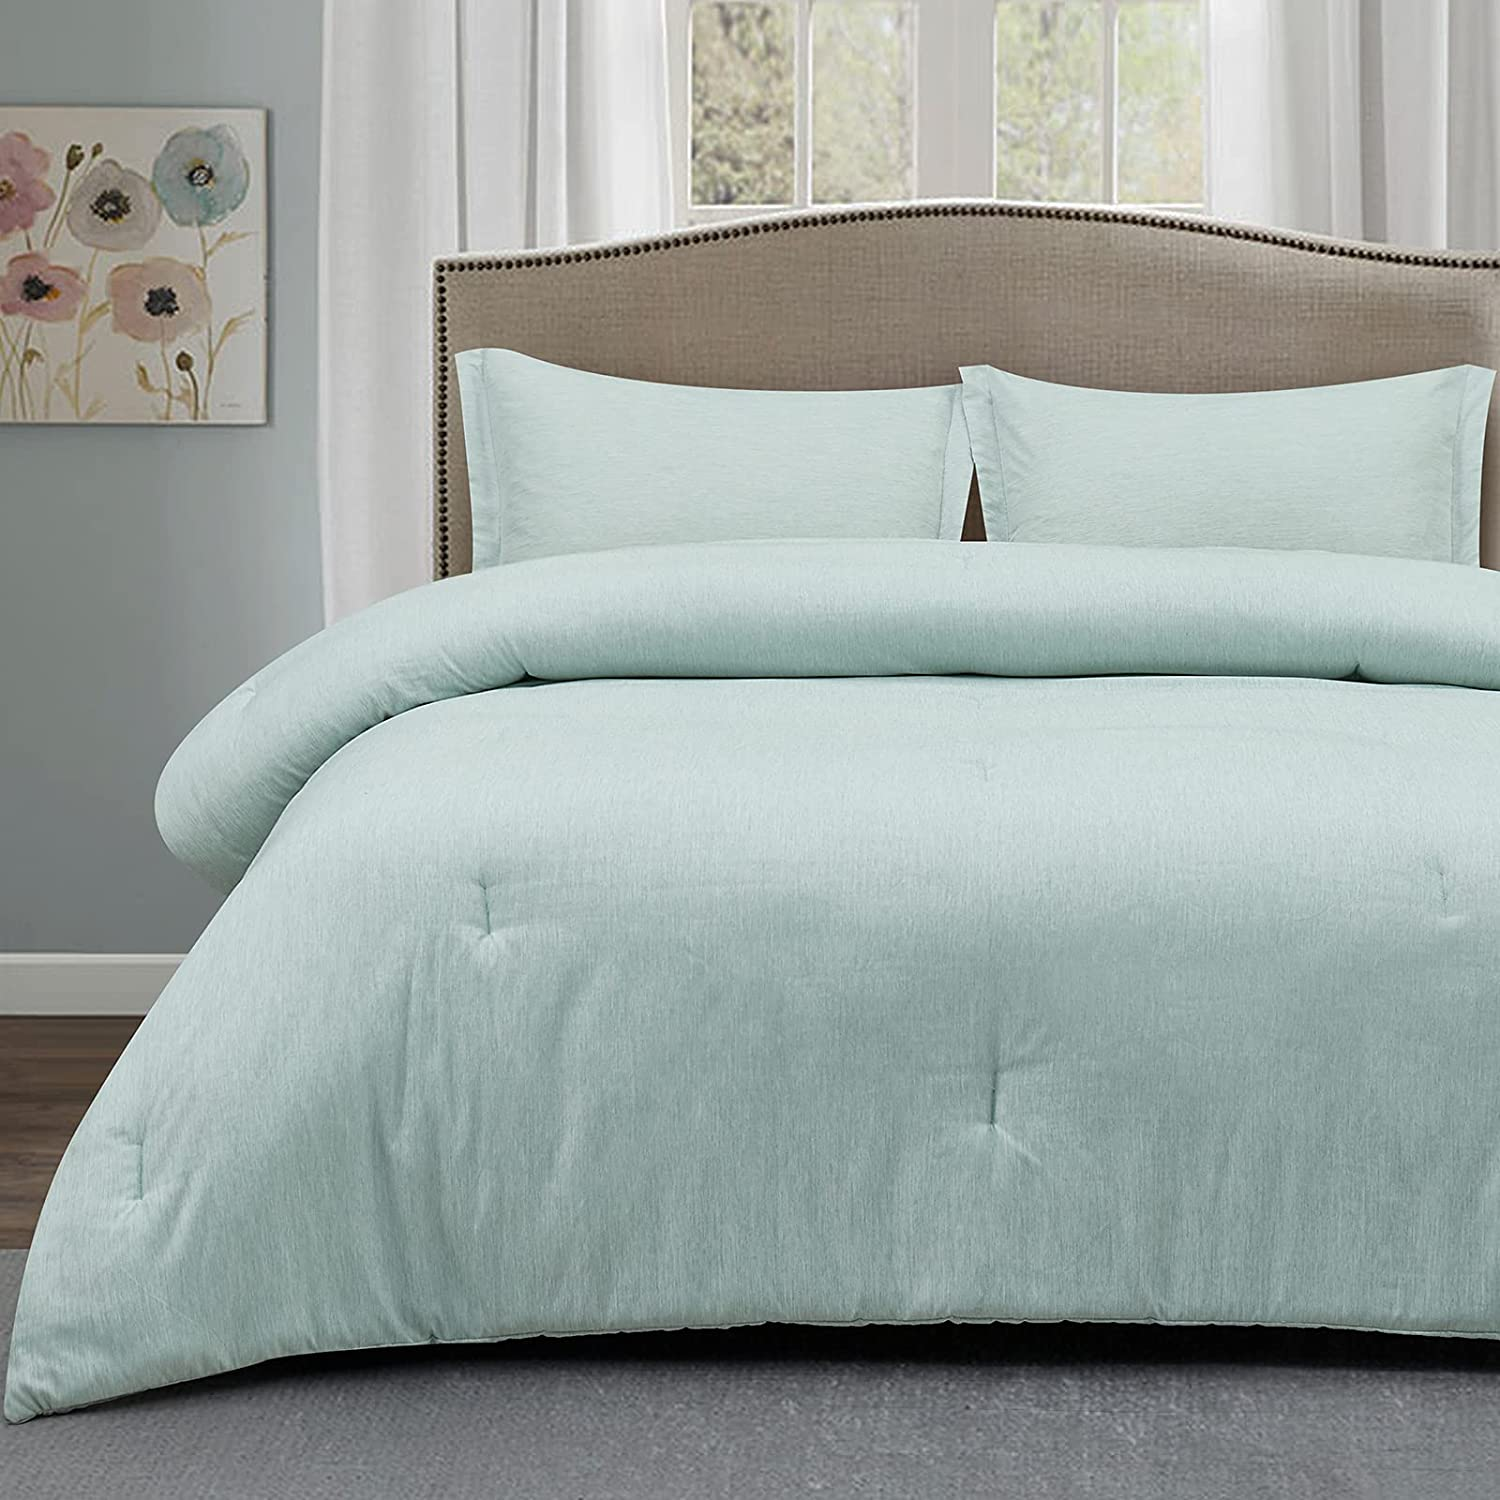 CozyLux Queen Comforter Set Deluxe Light Our shop most popular 3-Piece Dyeing Cationic Green